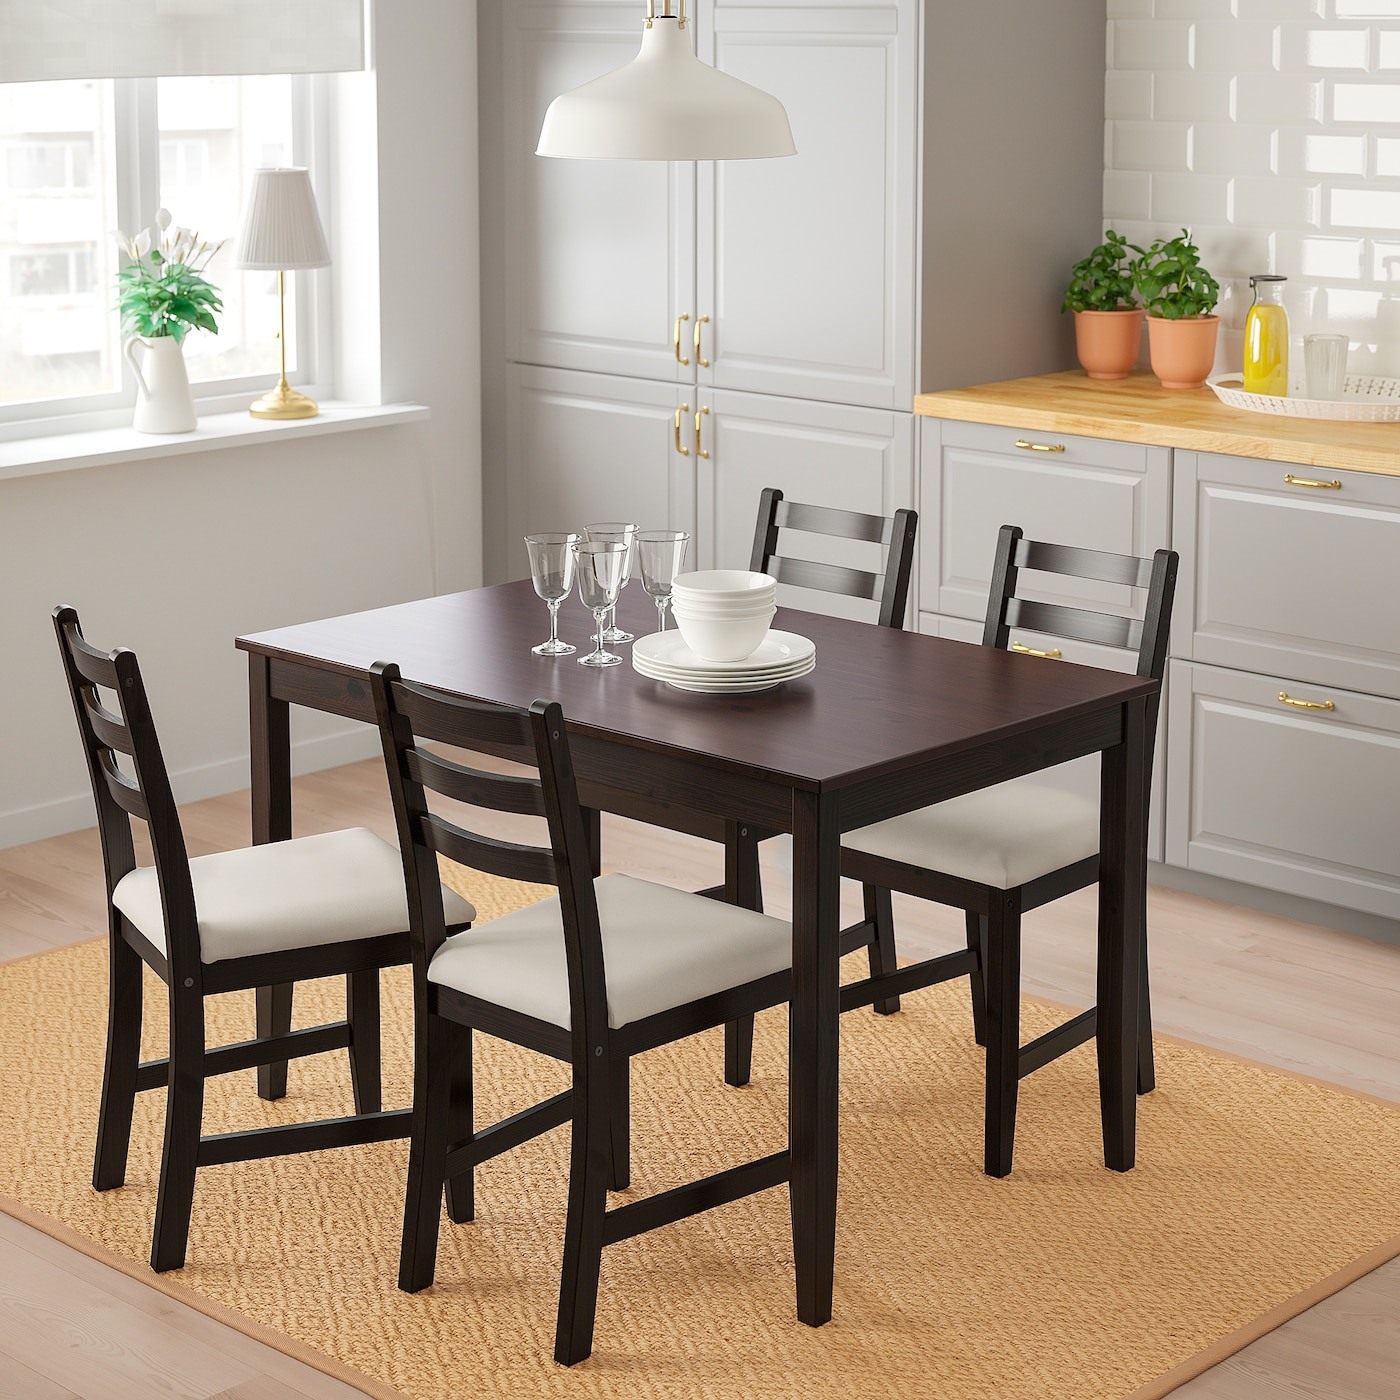 Lerhamn Table And 4 Chairs Black Brown